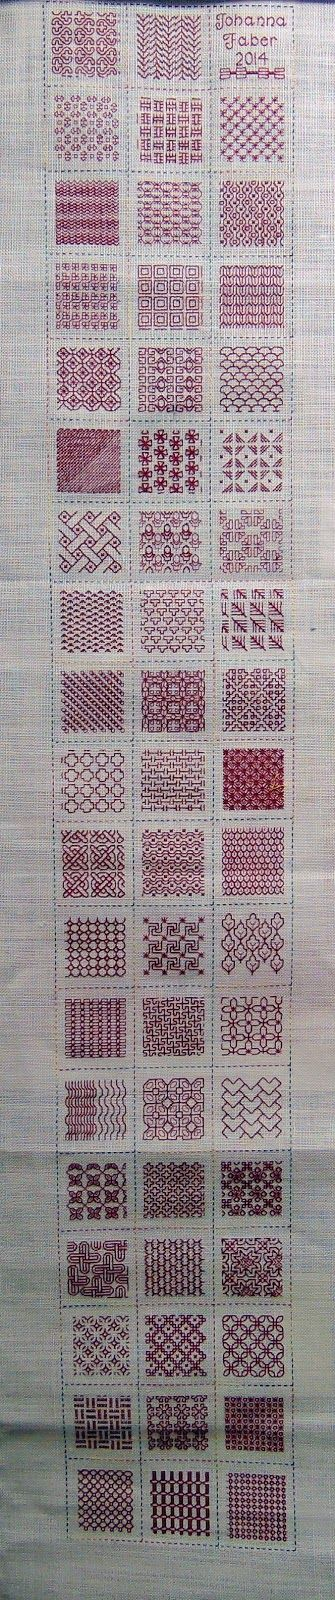 red block stitch sampler